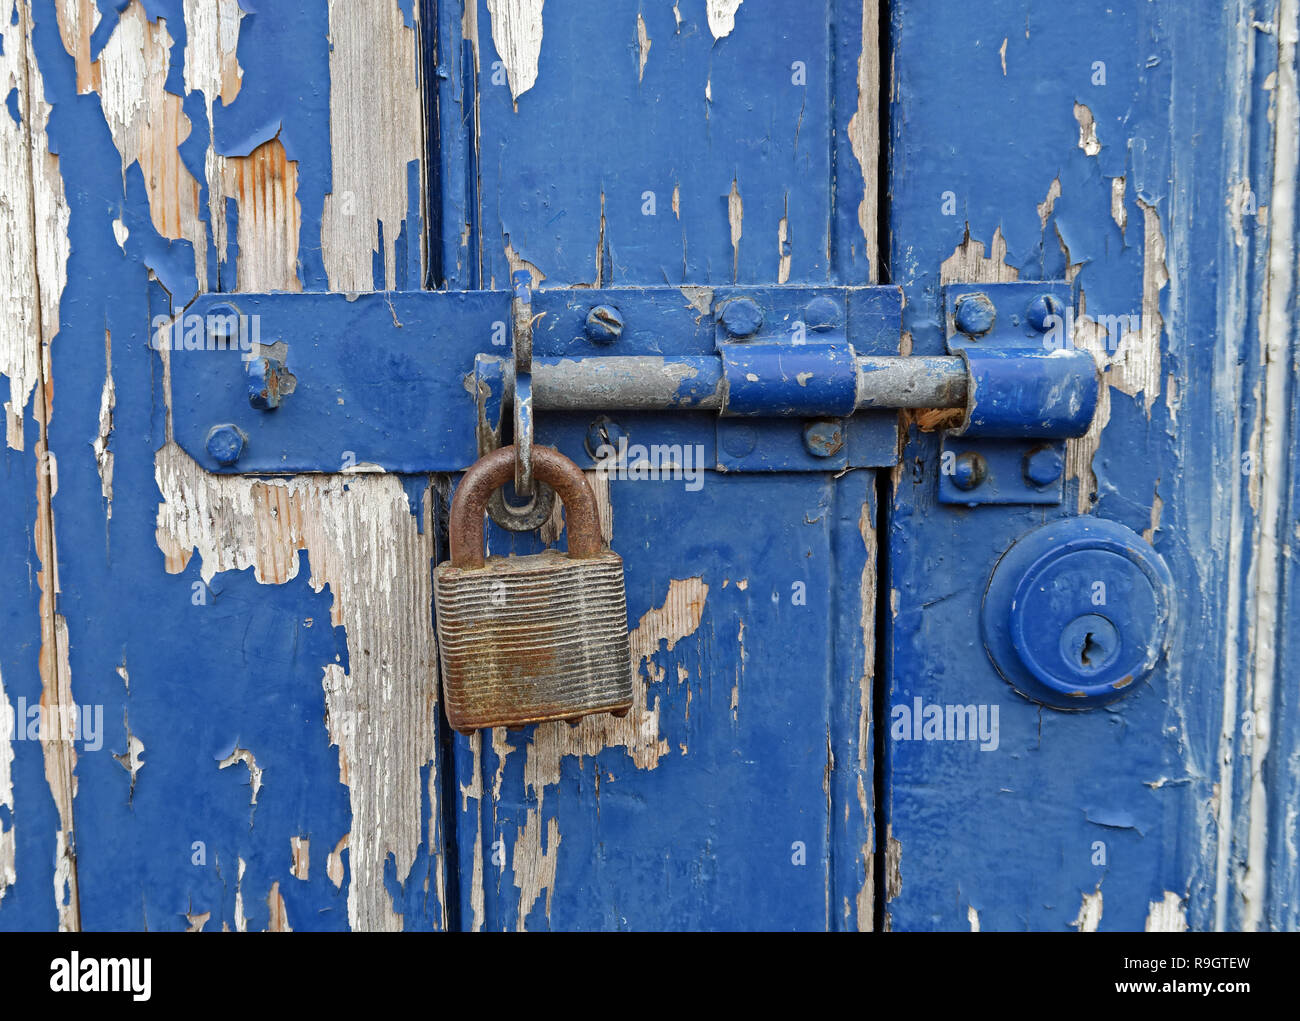 GoTonySmith,@HotpixUK,HotpixUK,Blue bolted door with peeling paint,South West England,UK,security,old,old lock,history,weathered,peeling,paint,weathered peeling,peeling paint,colour,colours,cracked,distressed,colored,key,keyhole,rust,rustic,deprivation,deprived,flakes,flaking,screws,door furniture,old door,neglected,unloved,garage,wooden,wood,hasp,old hasp,shut up